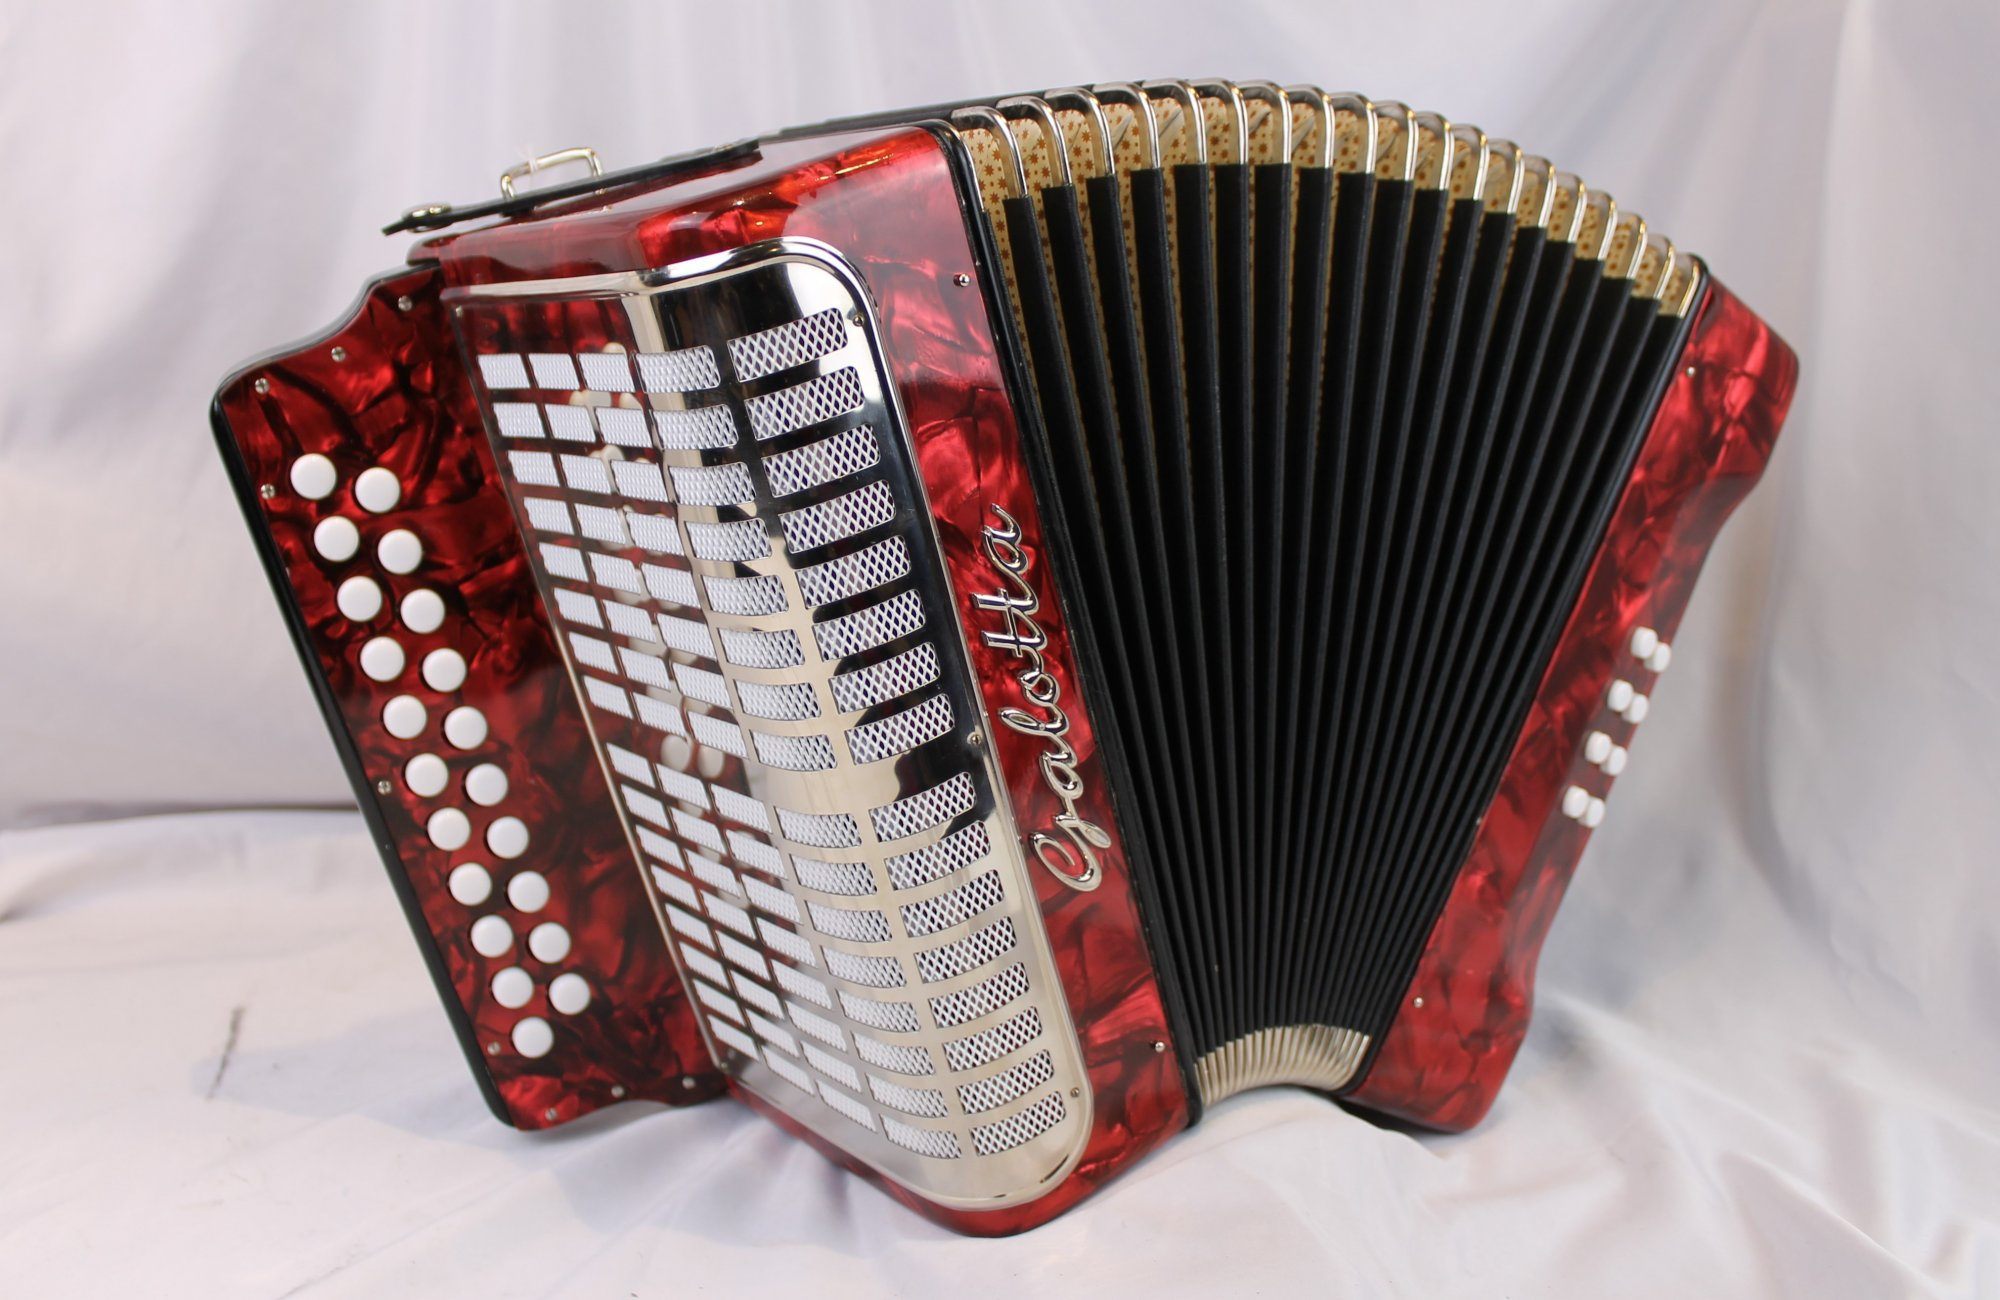 NEW Red Galotta Weltmeister 406 Diatonic Button Accordion CF 21 8